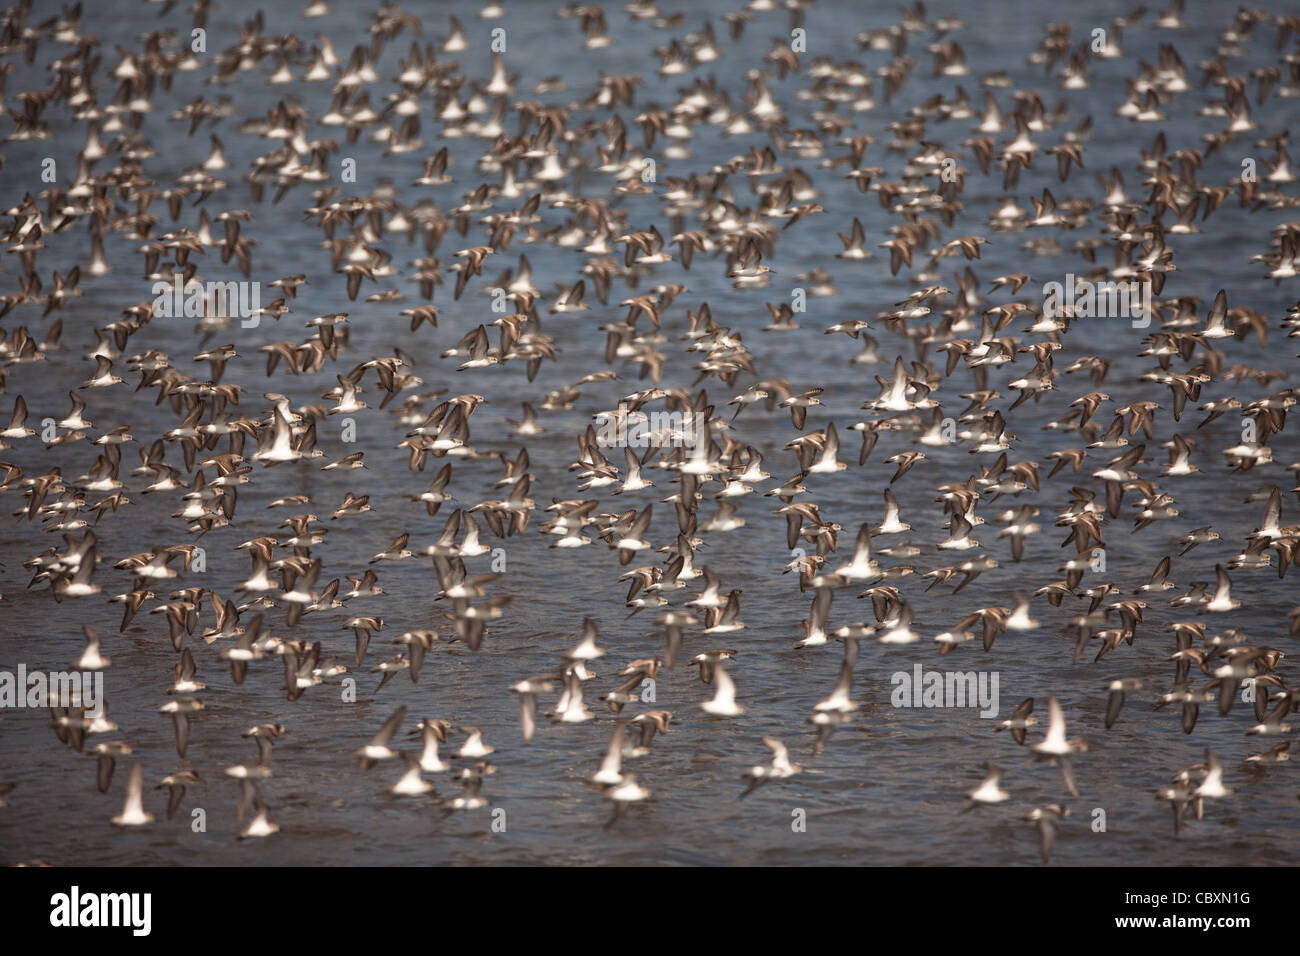 Flock of shorebirds in flight at Punta Chame, Pacific coast, Panama province, Republic of Panama. - Stock Image